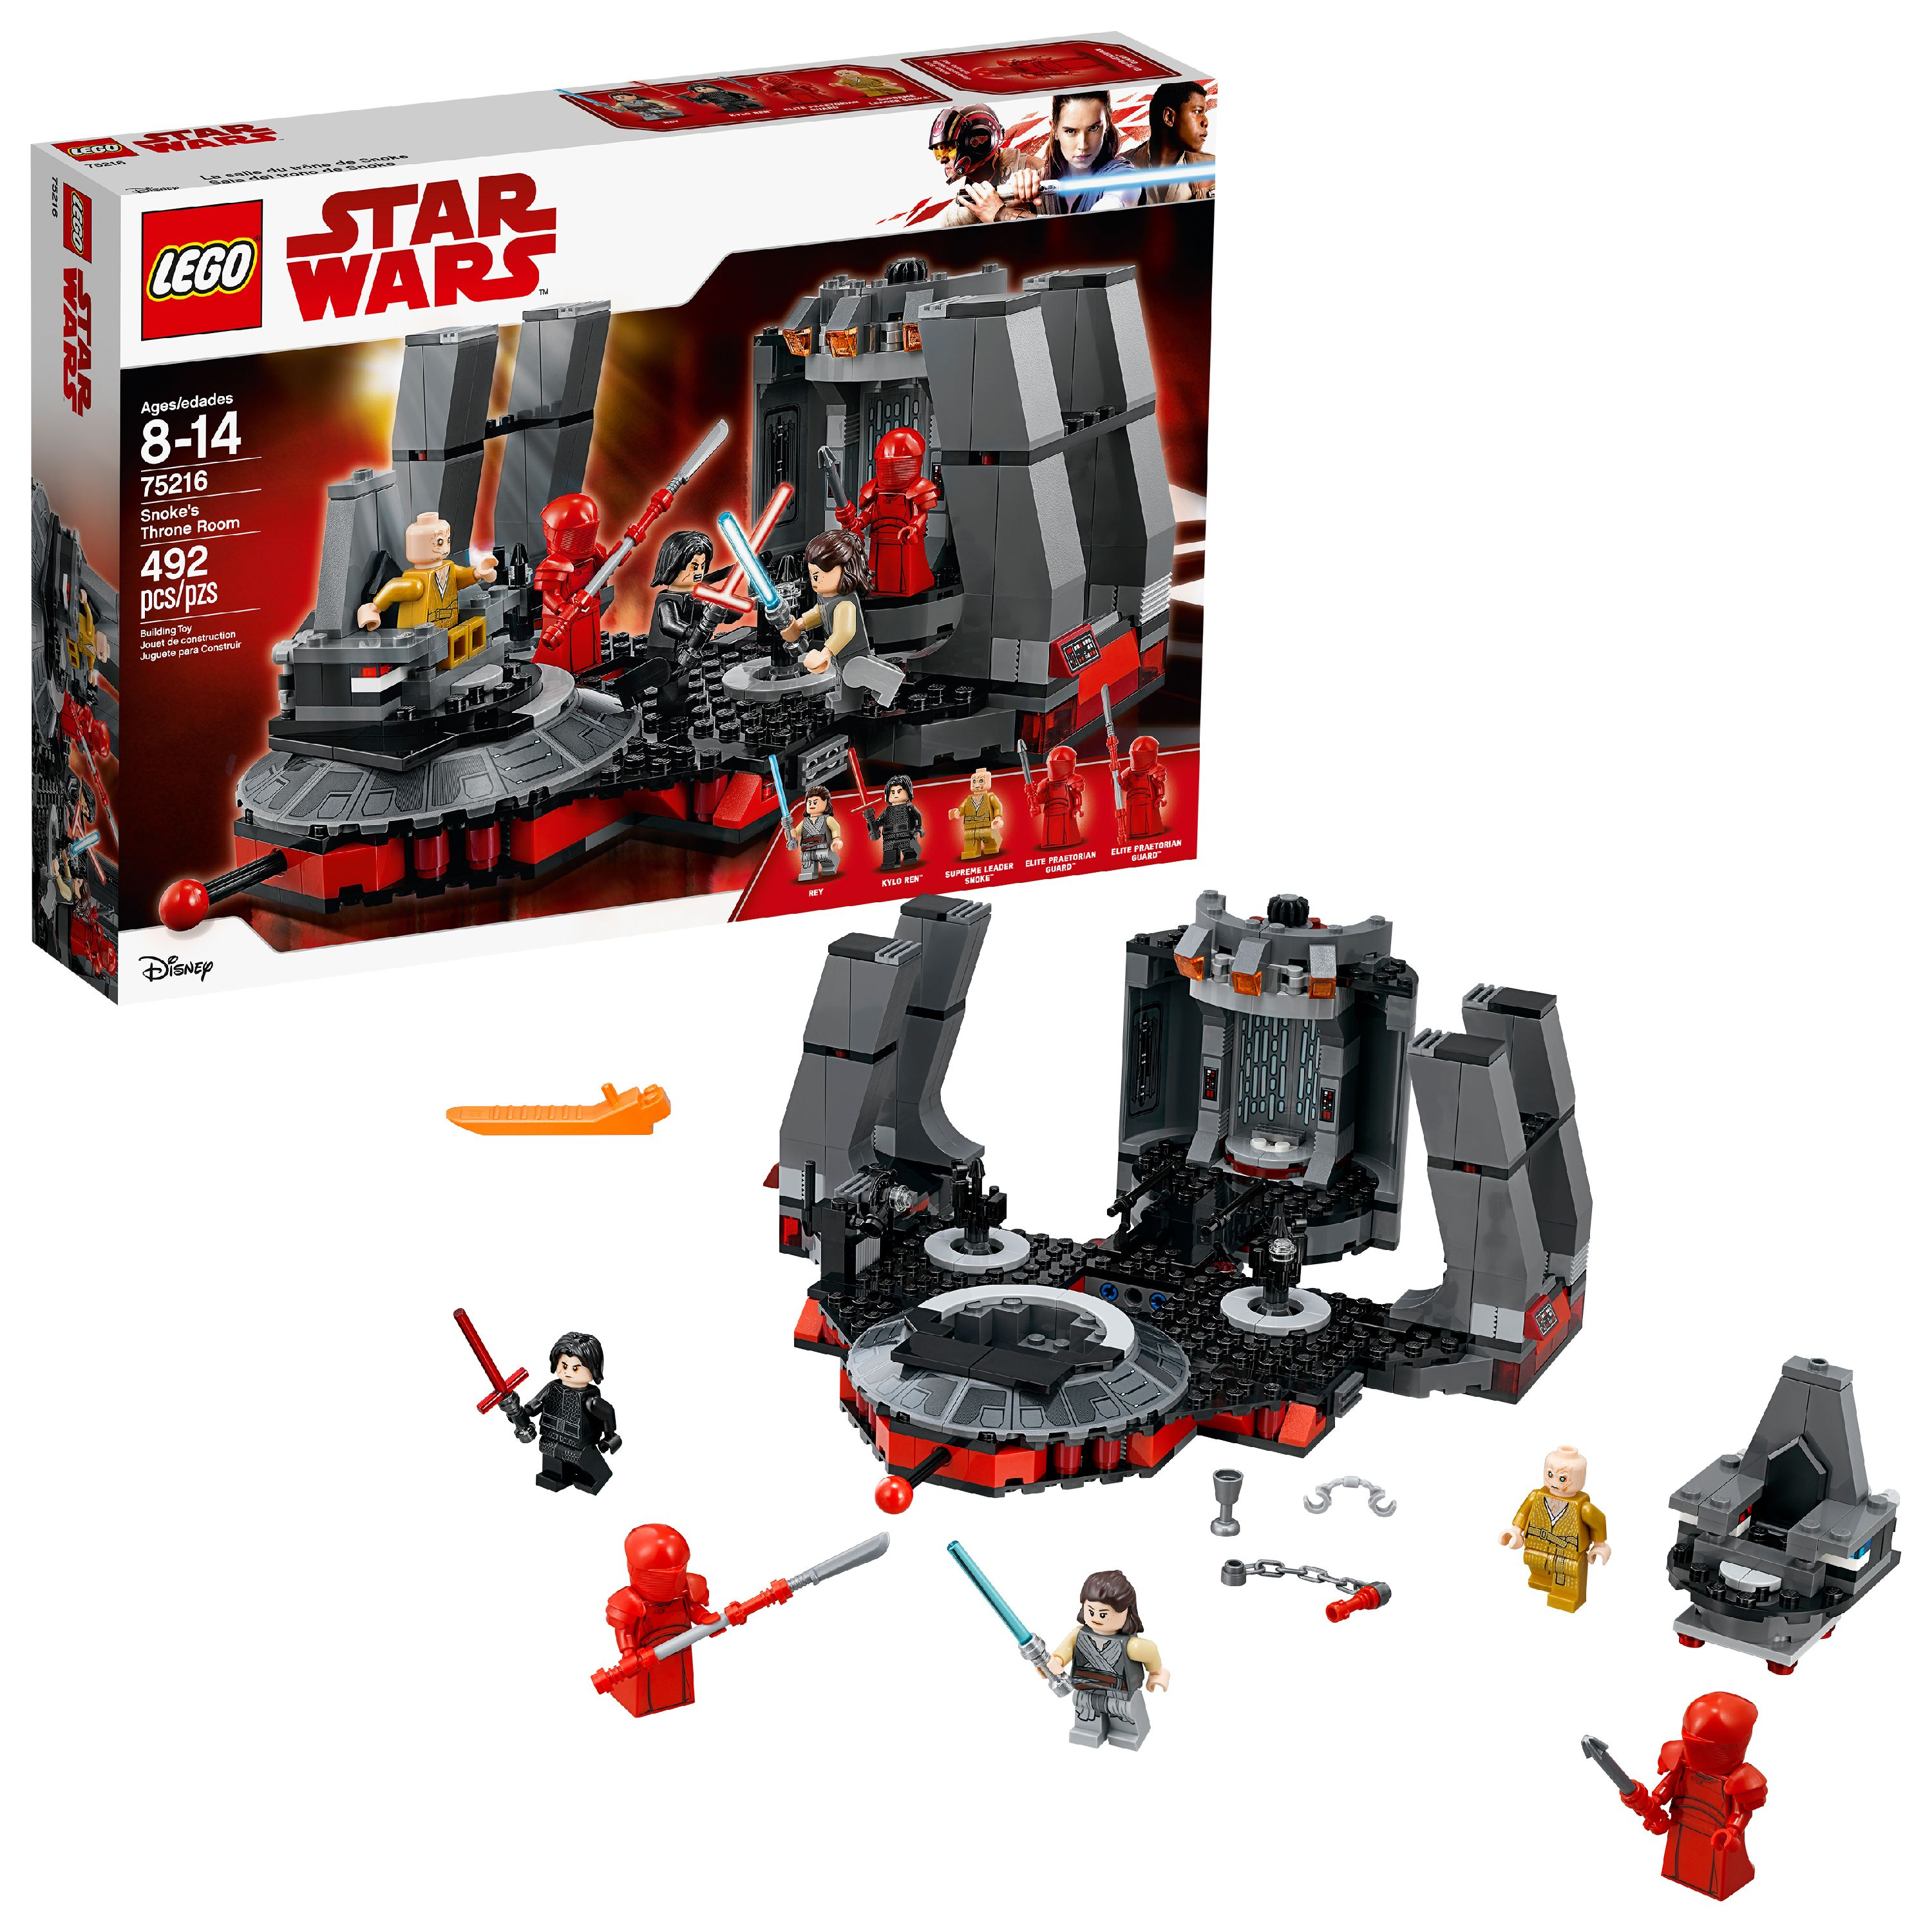 LEGO Star Wars TM Snoke's Throne Room 75216 (492 Pieces)